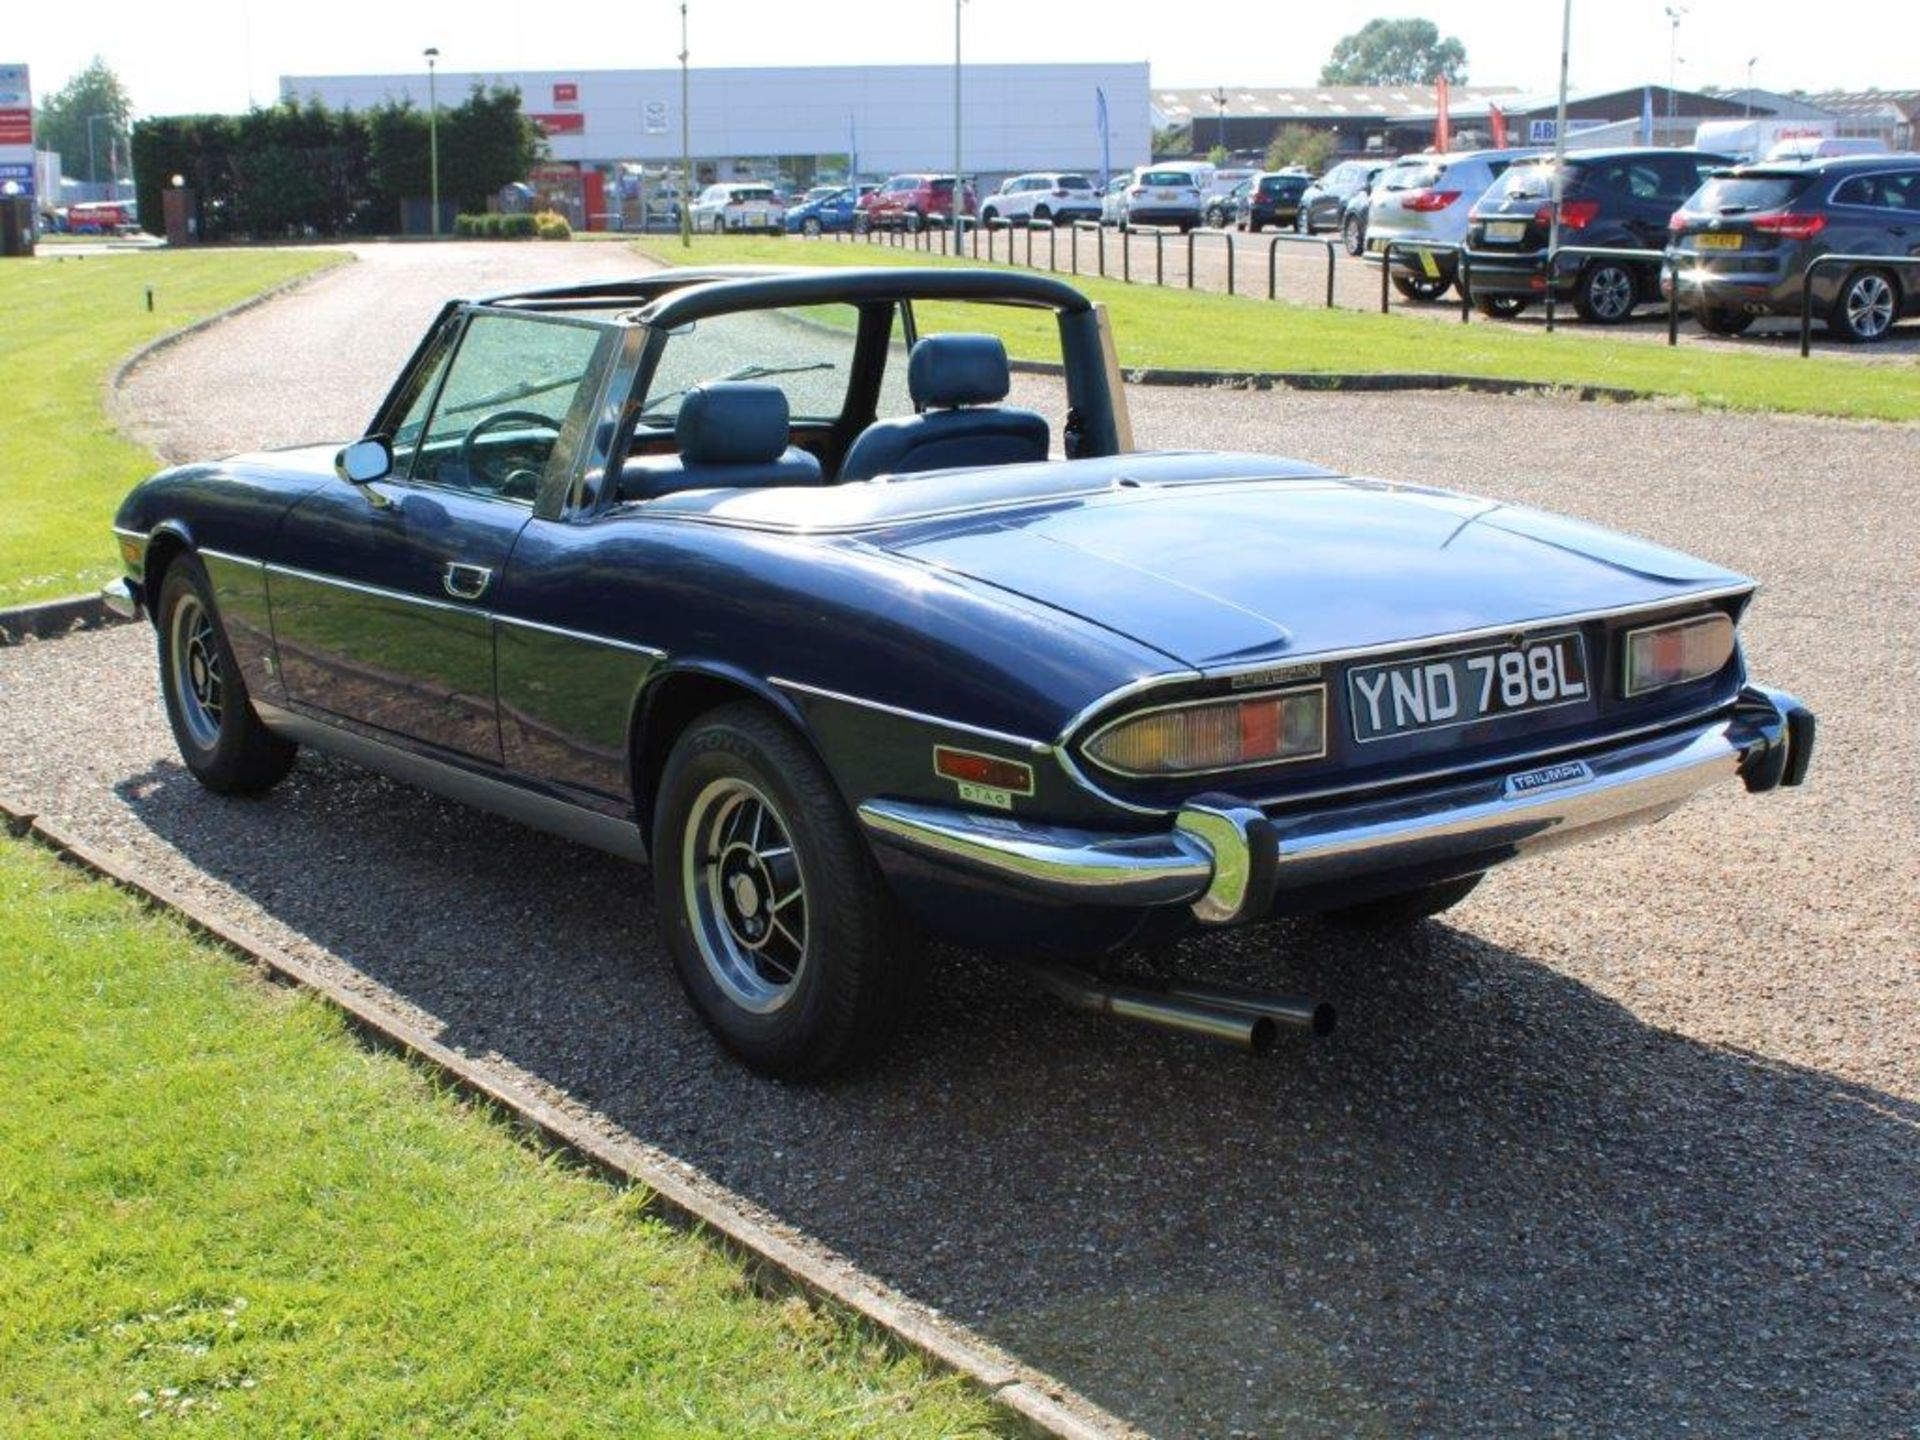 1973 Triumph Stag 3.0 LHD - Image 7 of 28